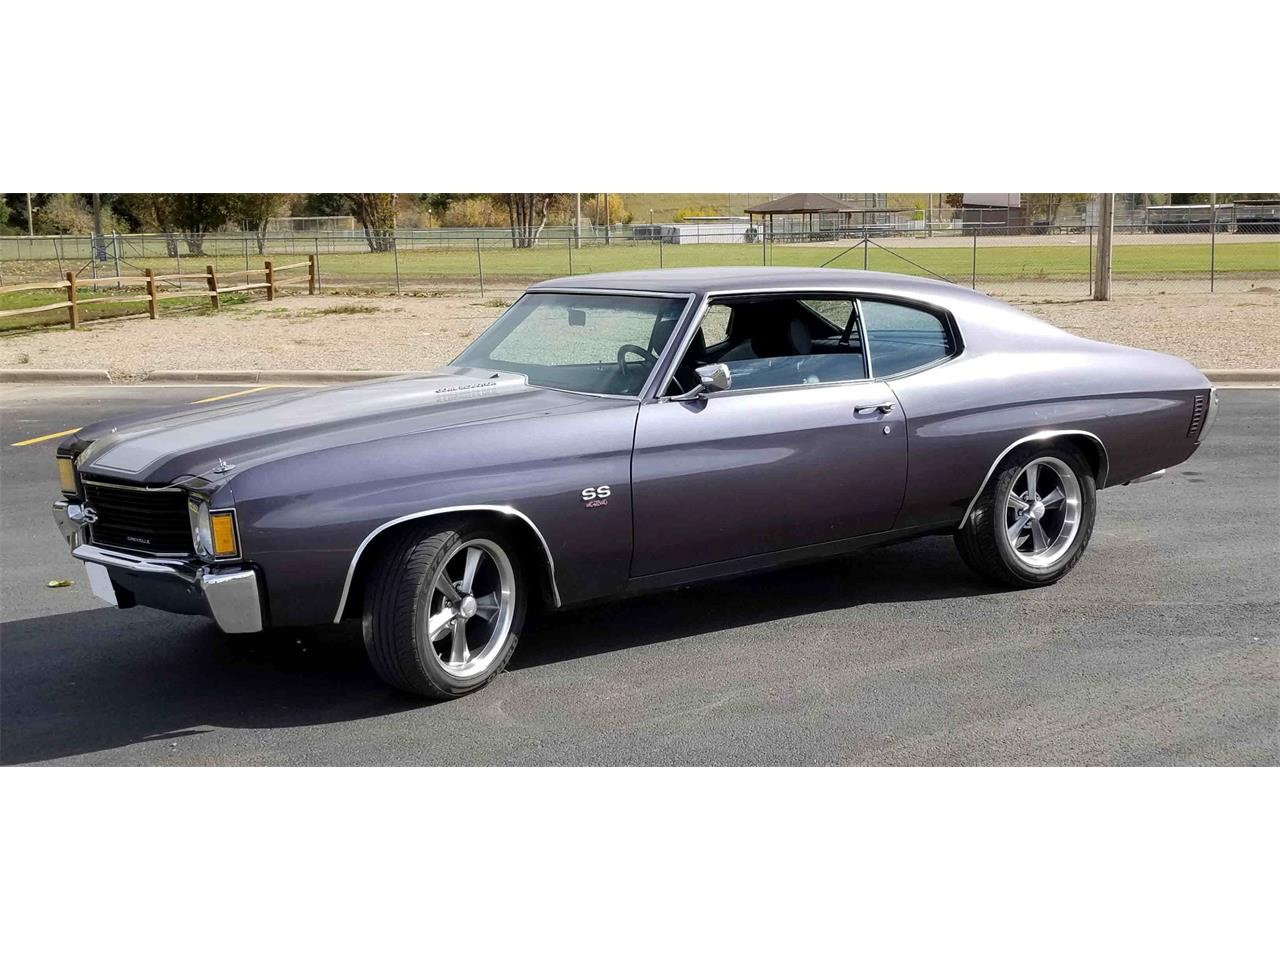 Large Picture of Classic 1972 Chevrolet Chevelle SS - $35,000.00 Offered by a Private Seller - OW11